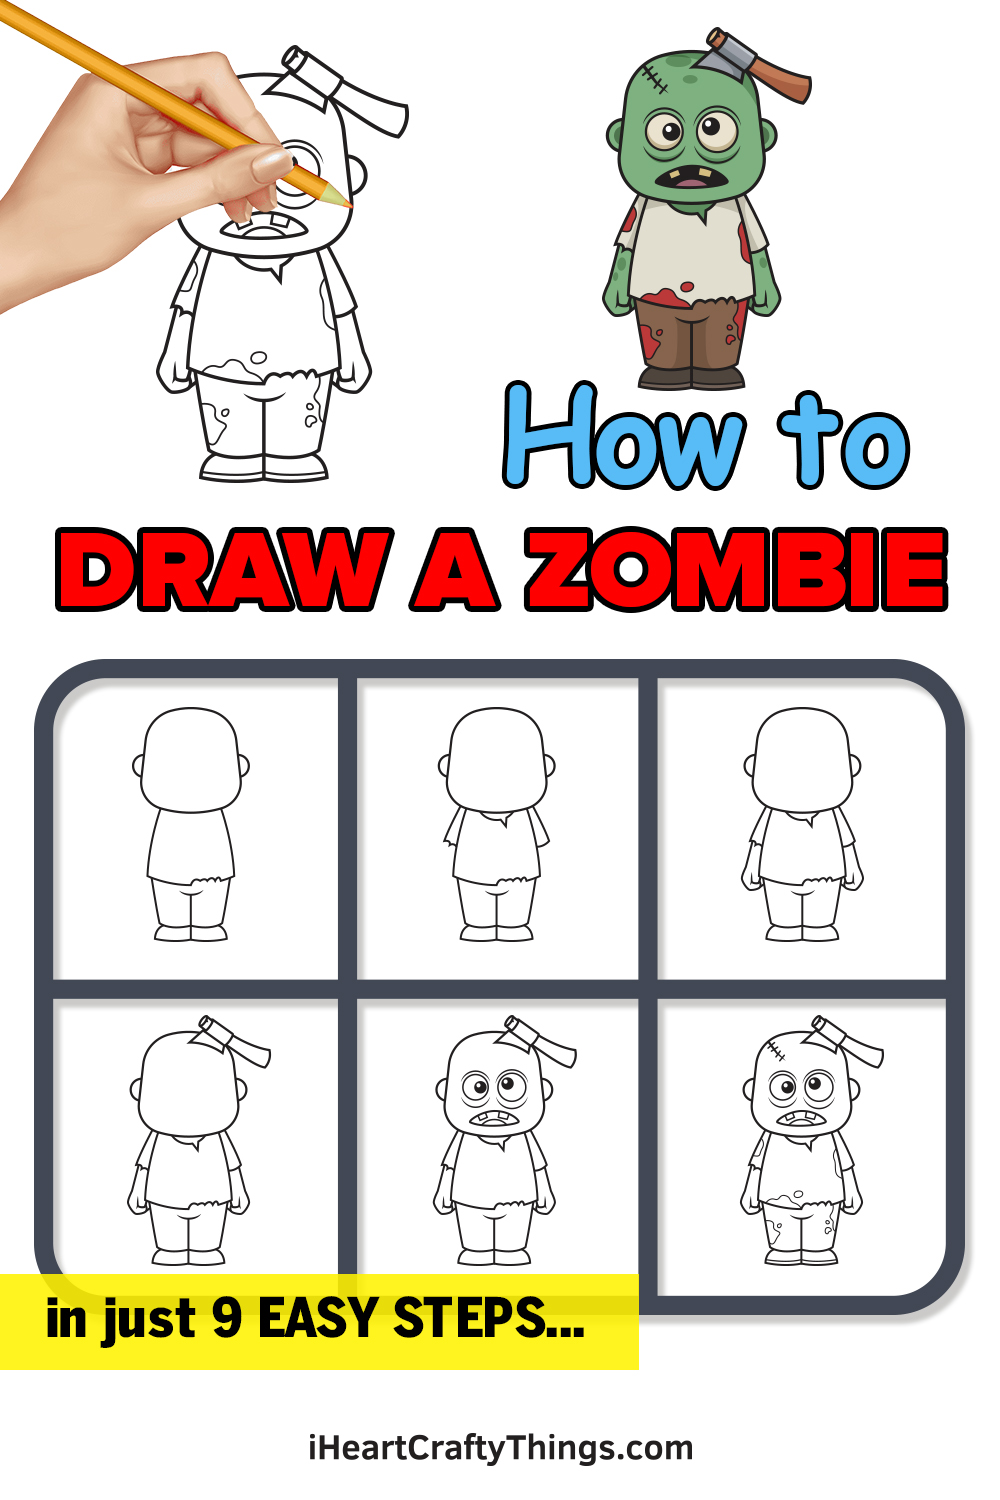 how to draw a zombie in 9 easy steps